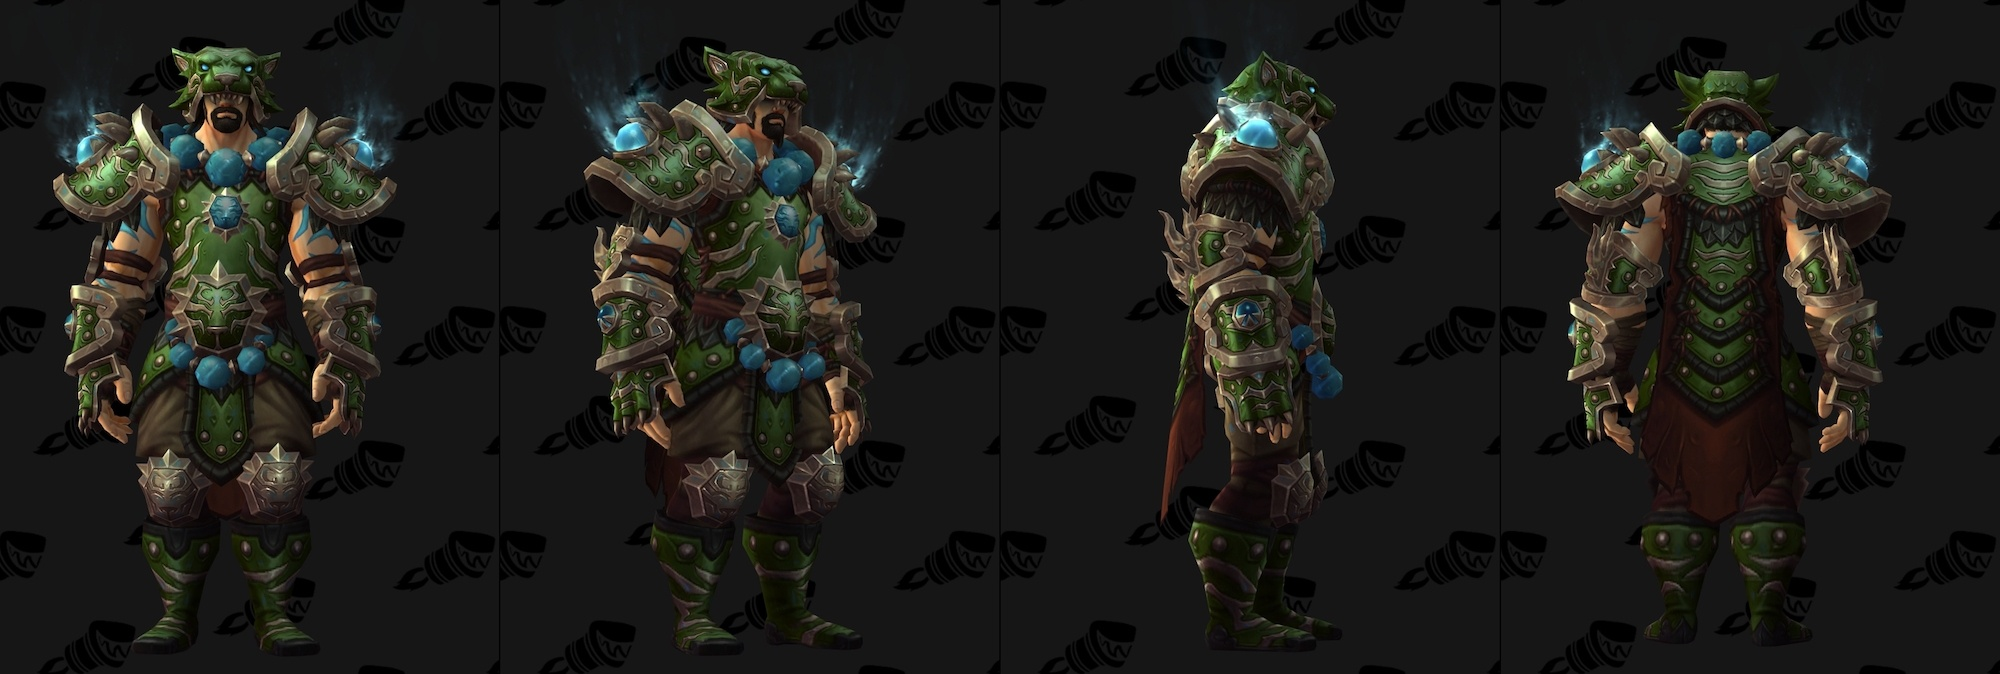 Tier 20 Armor Sets And Bonuses From Tomb Of Sargeras Guides Wowhead